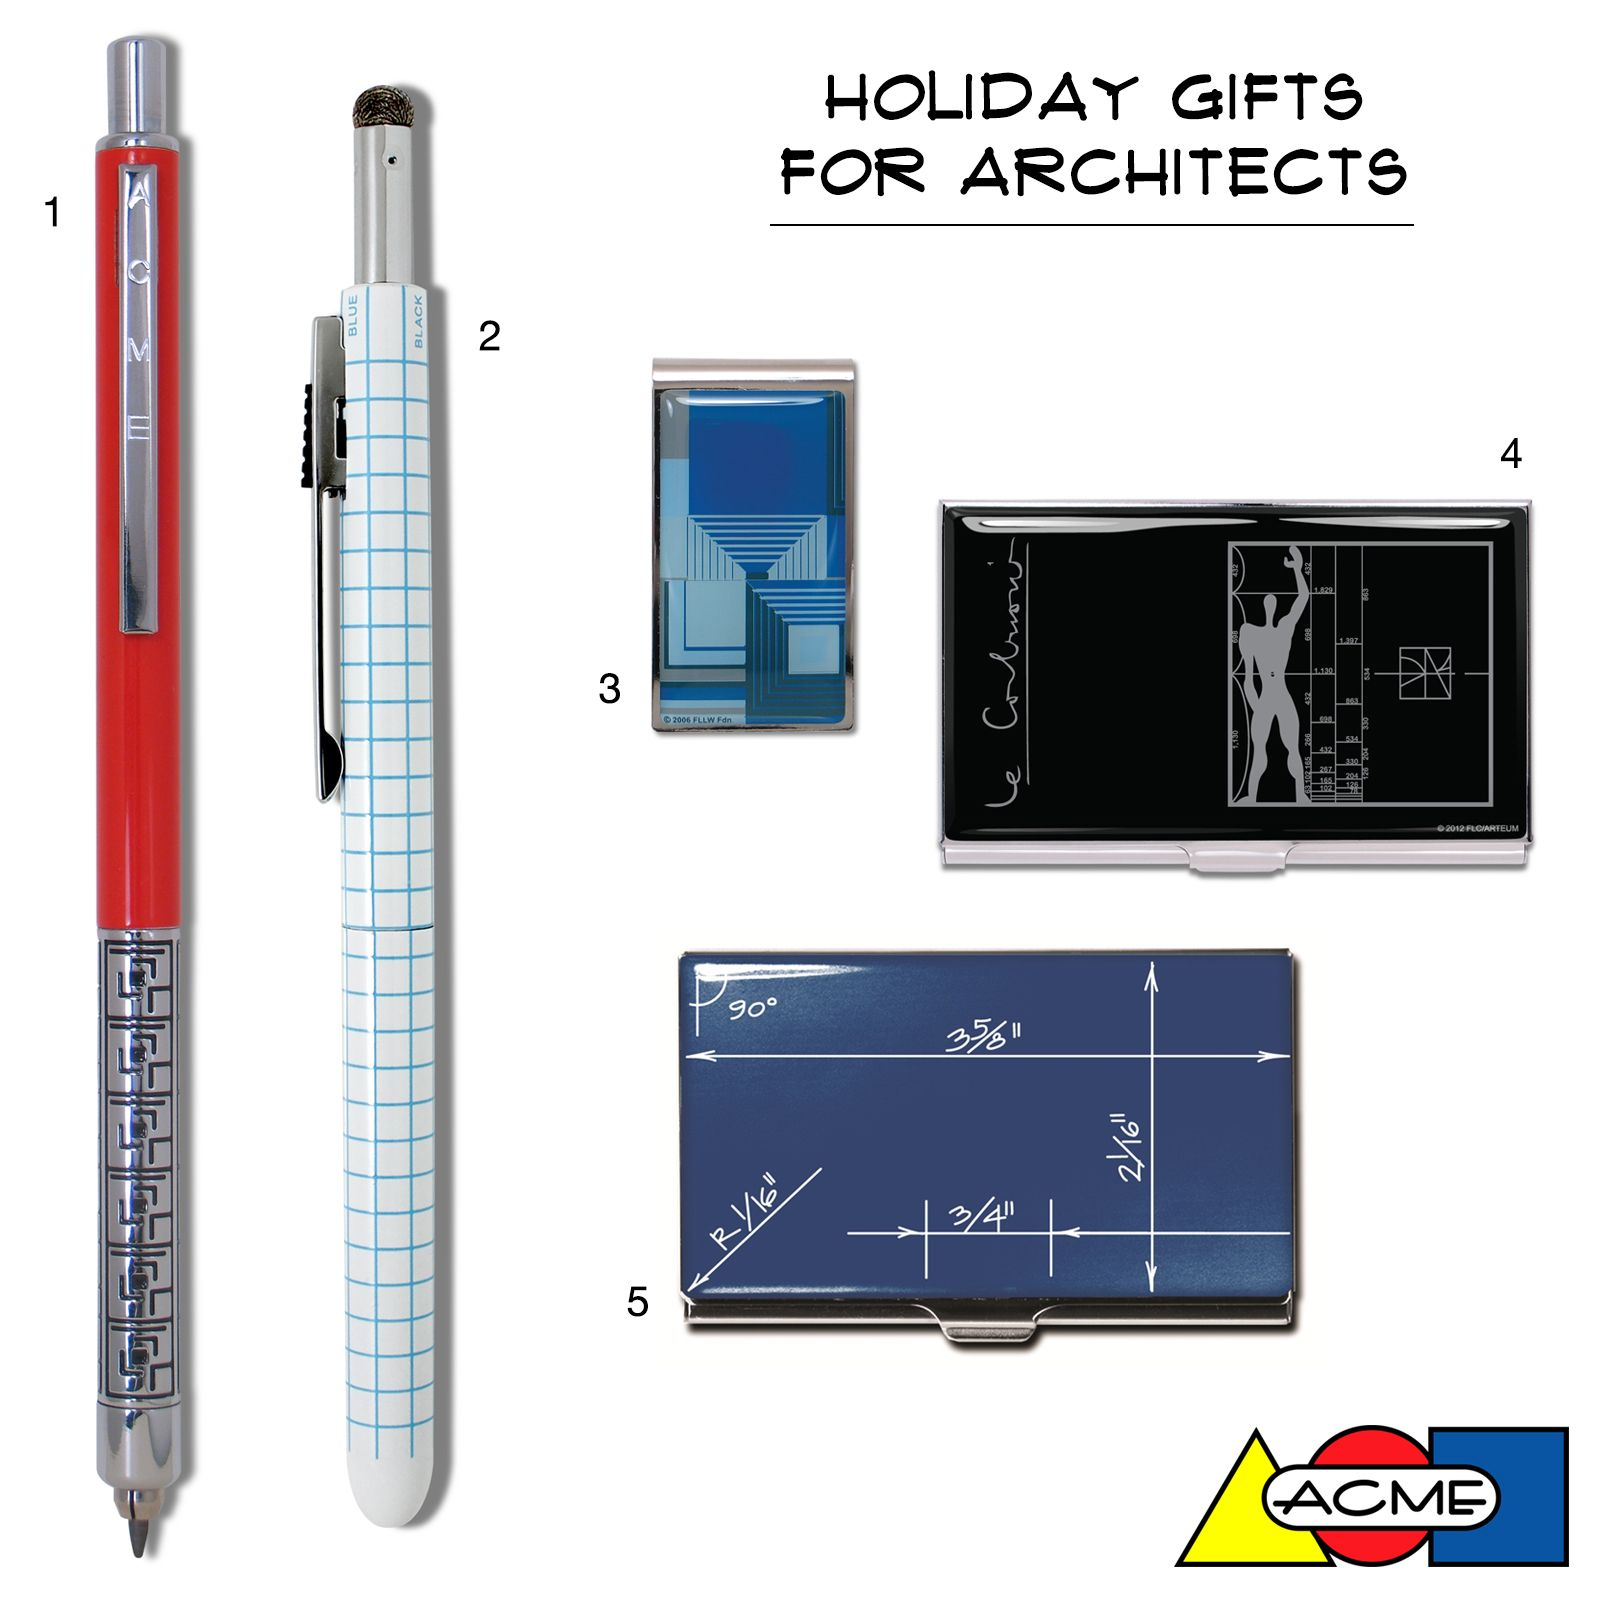 Architect Gift holiday gifts for architectsacme studio! featured: 1. flw